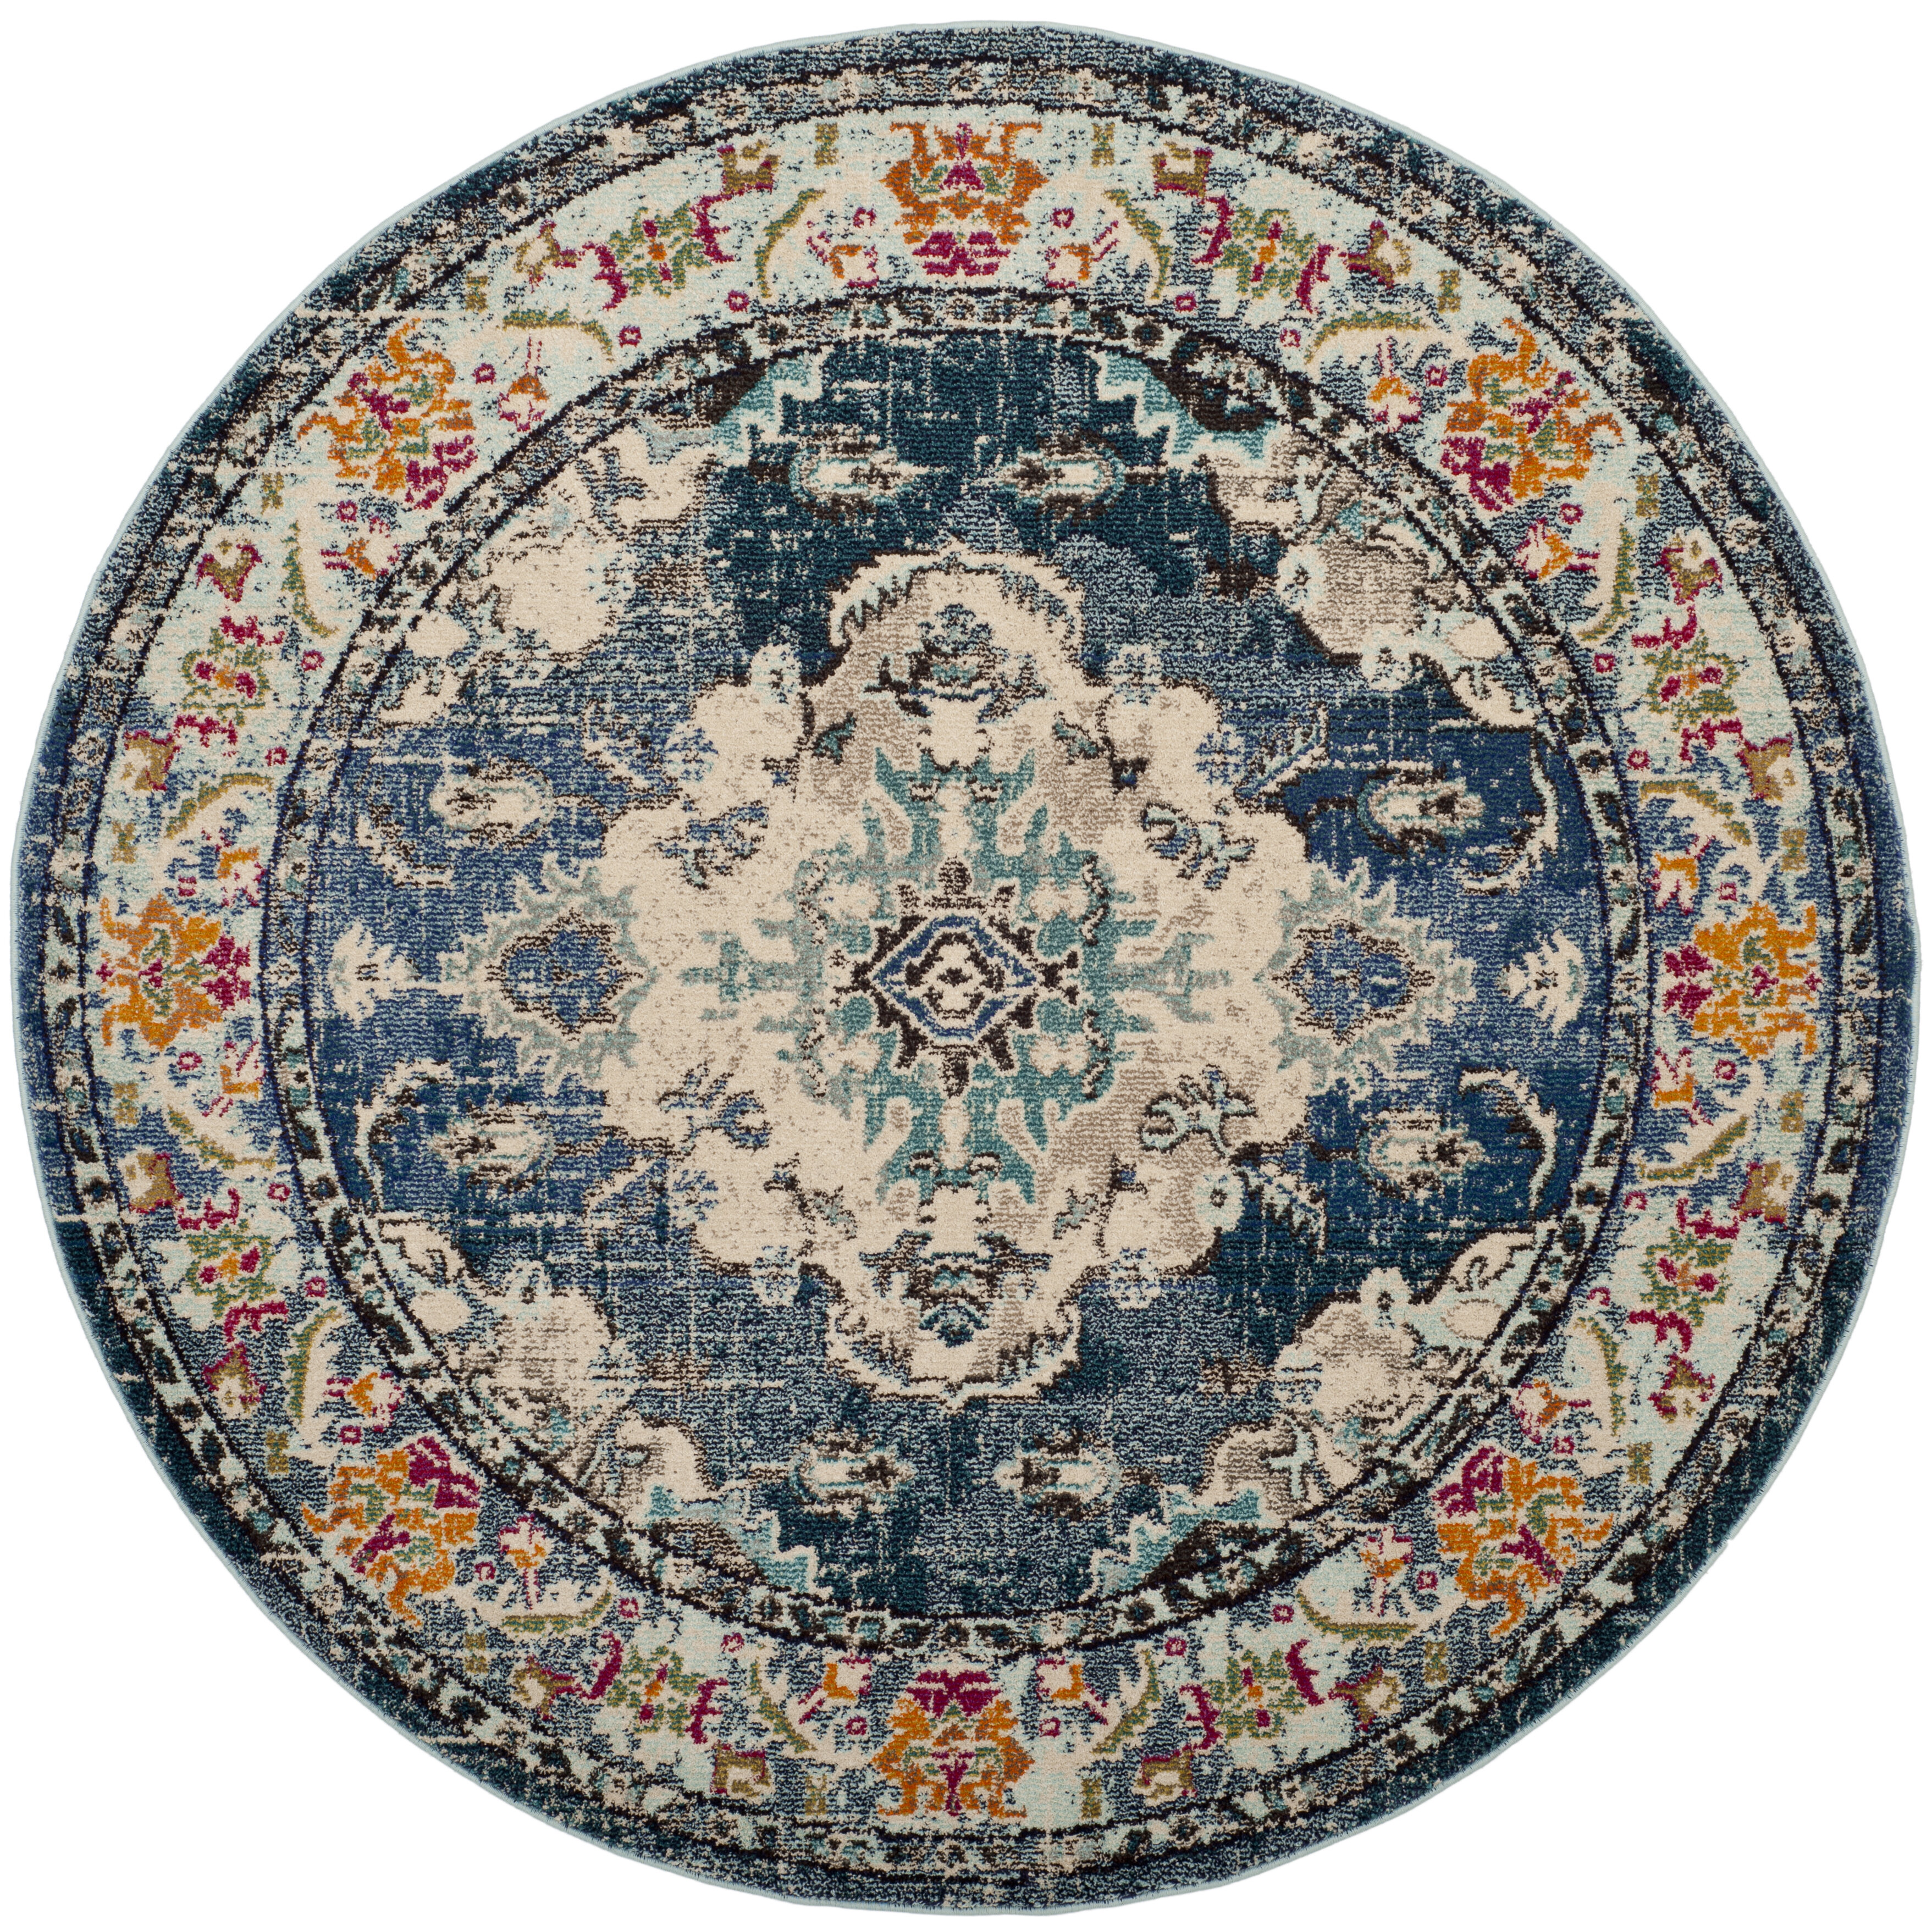 3 4 Round Area Rugs You Ll Love Wayfair